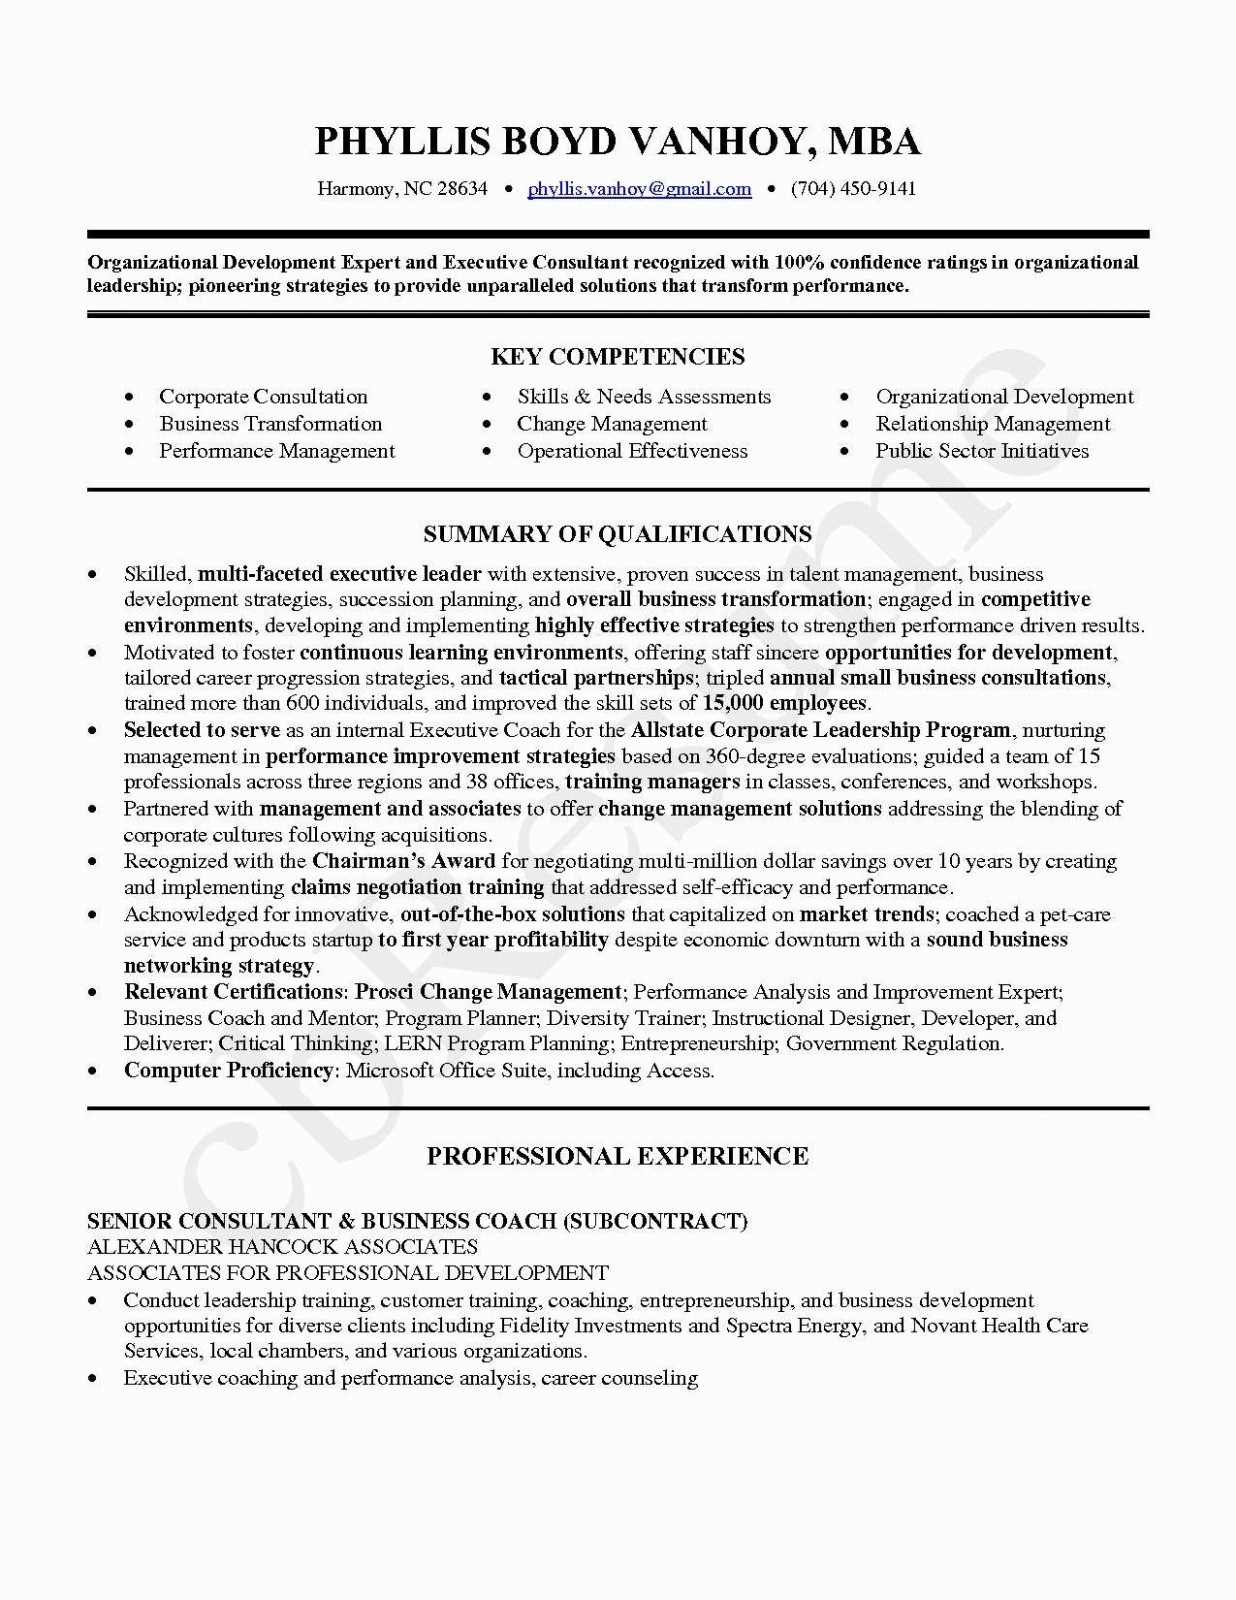 Professional Business Resume - Business Resume Refrence Career Change Resume Template Unique